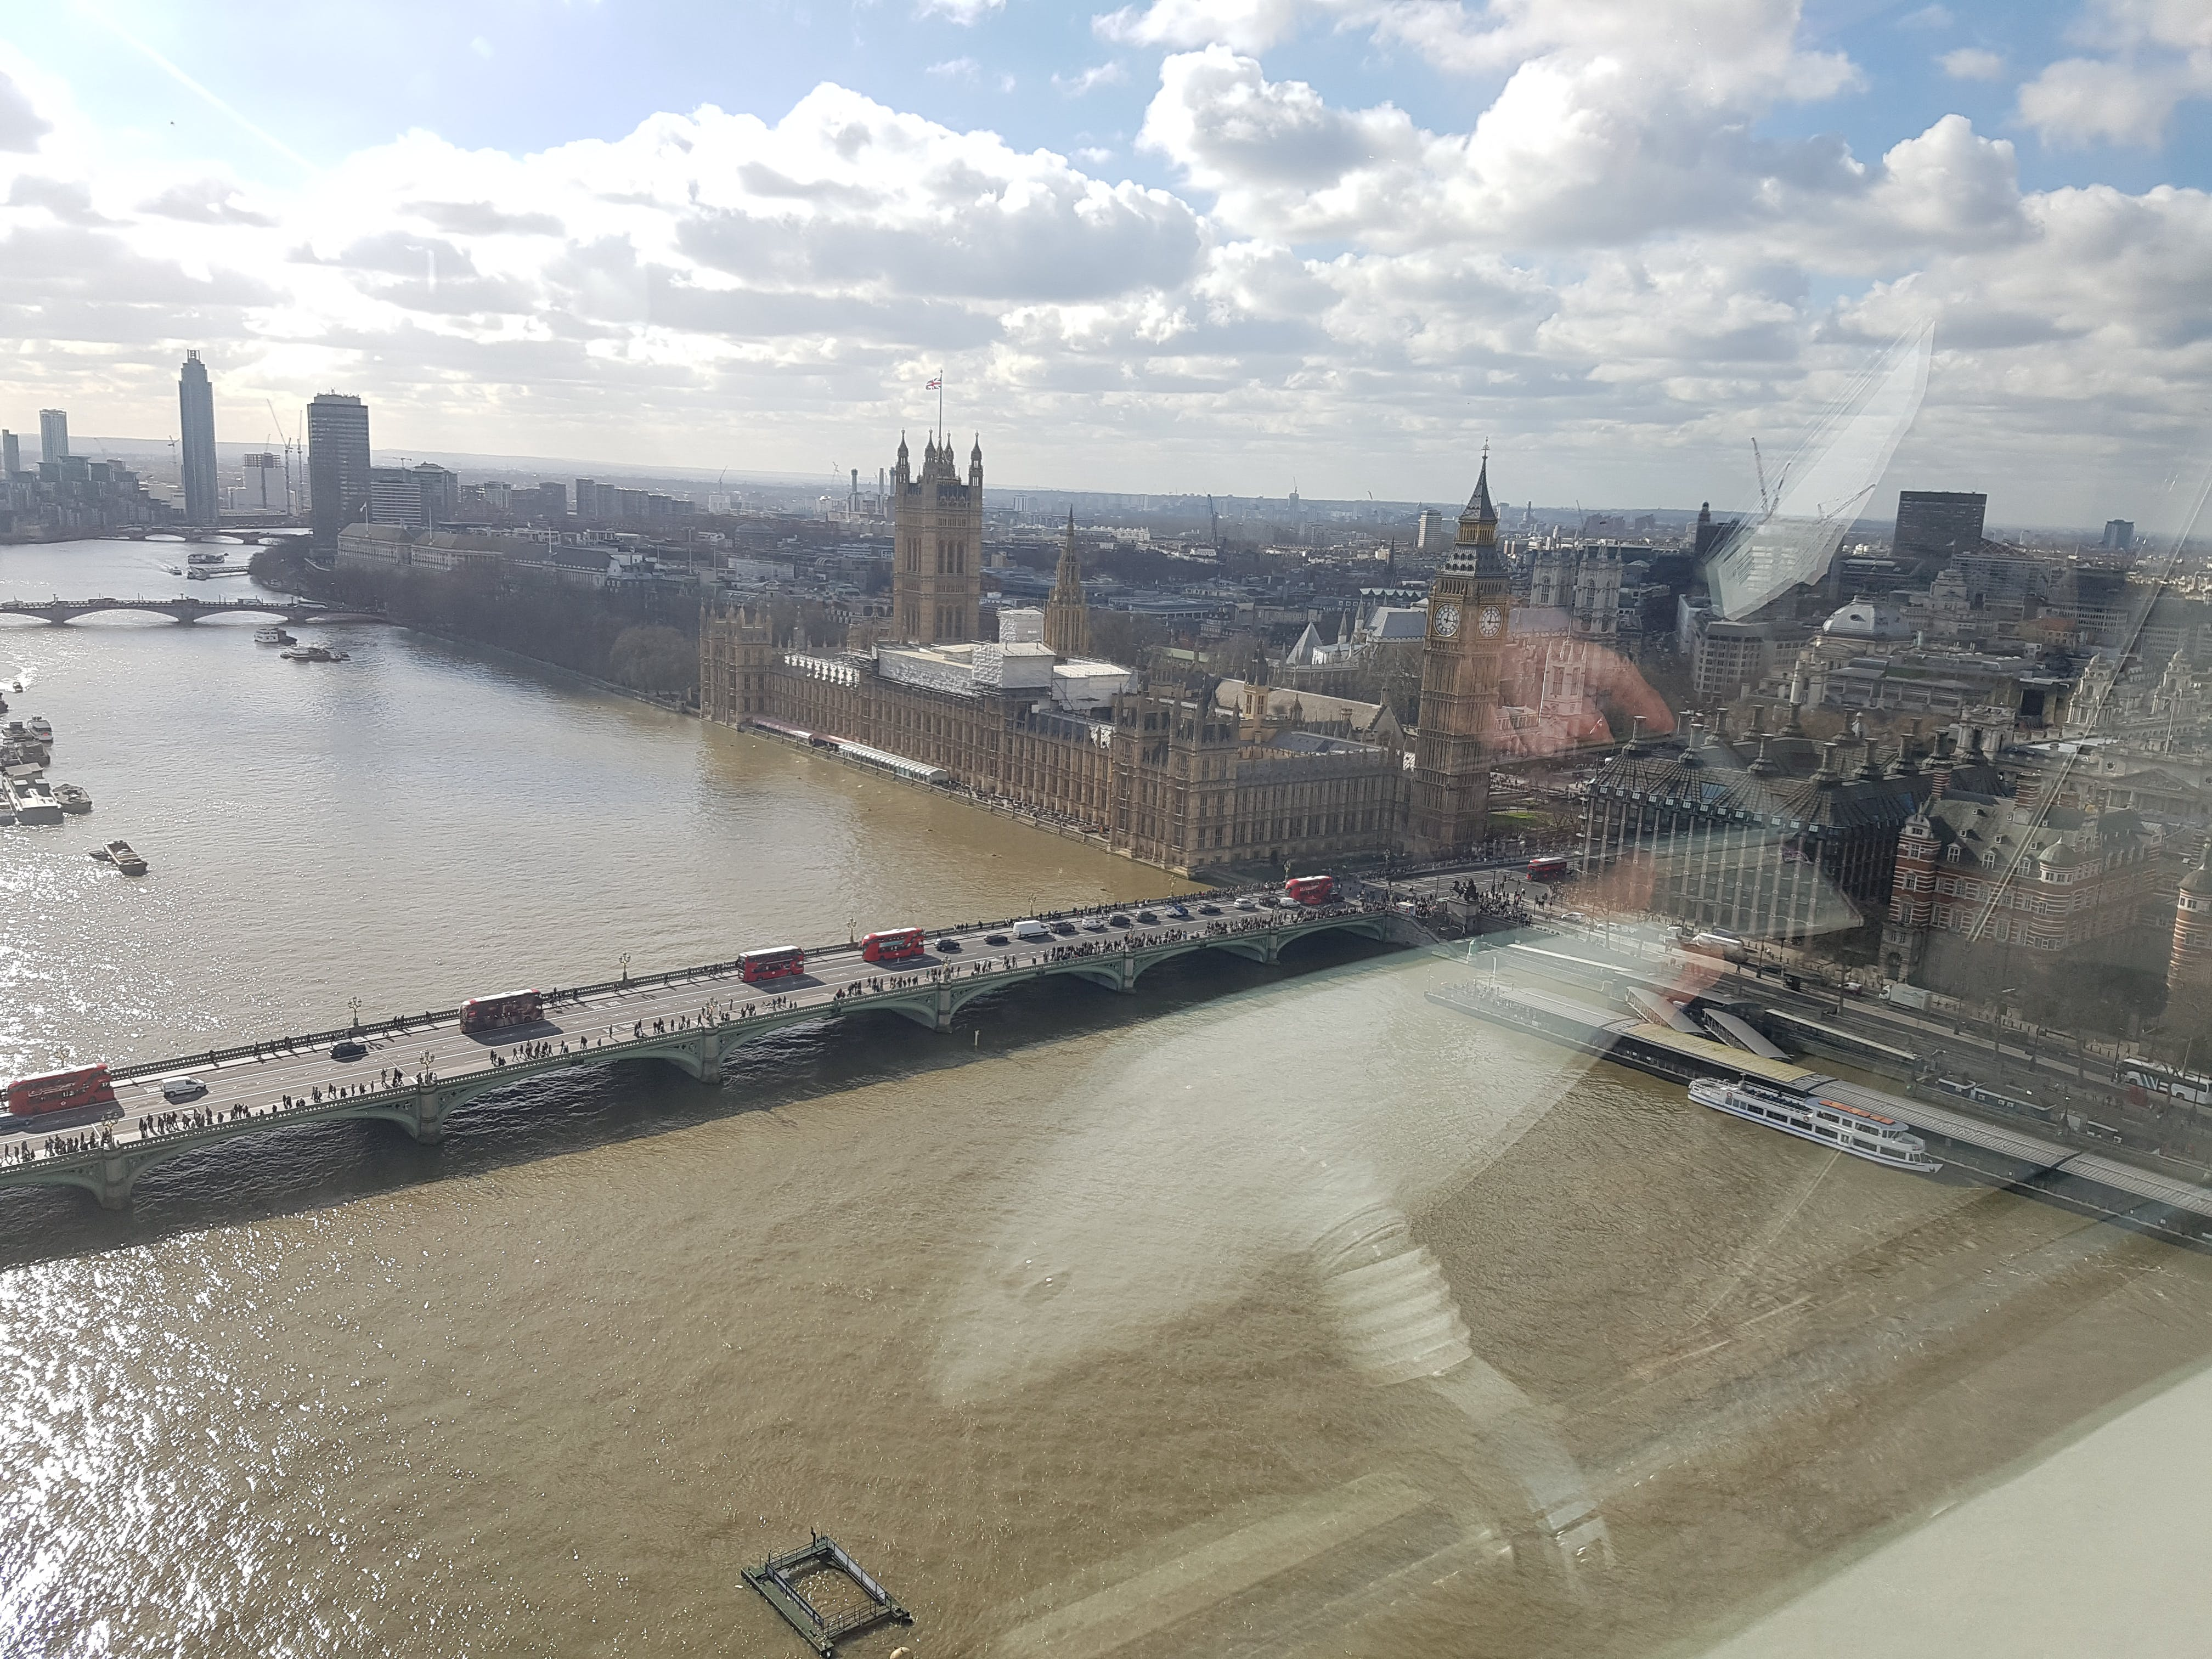 Free stock photo of London View from the Eye